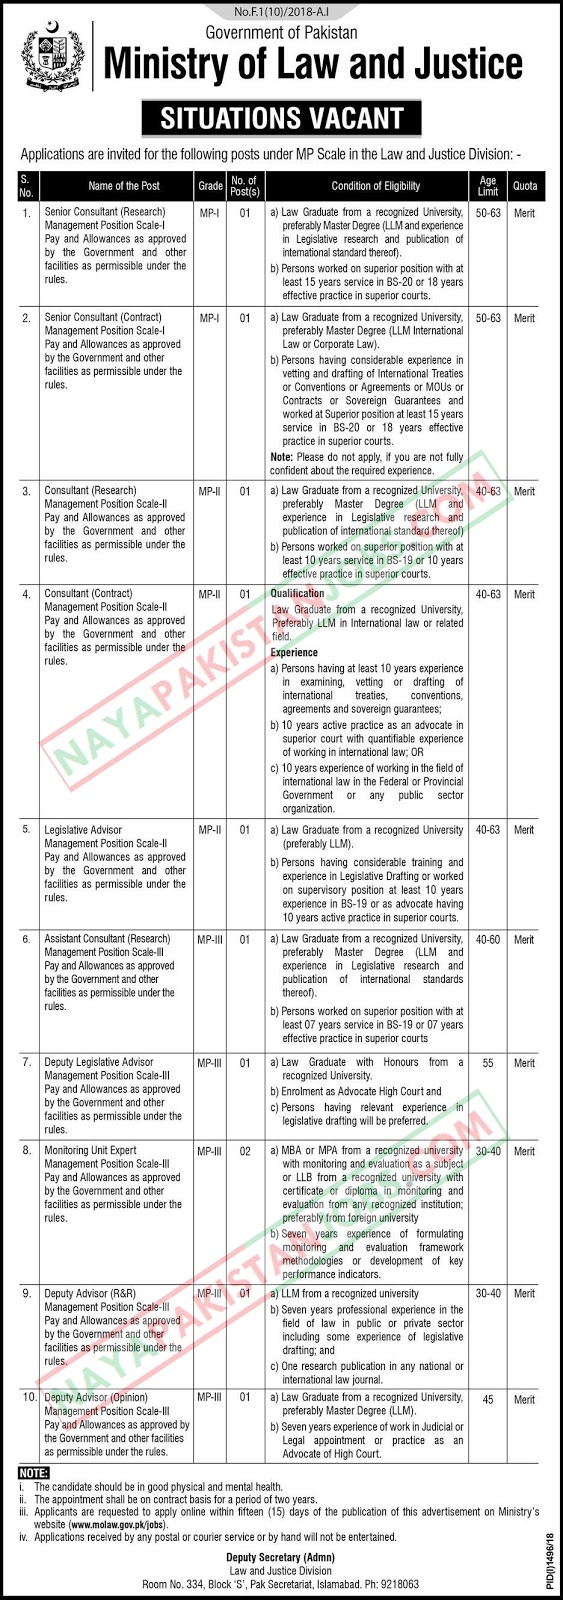 Latest Vacancies Announced in Ministry Of Law And Justice Govt of Pakistan 4 October 2018 - Naya Pakistan